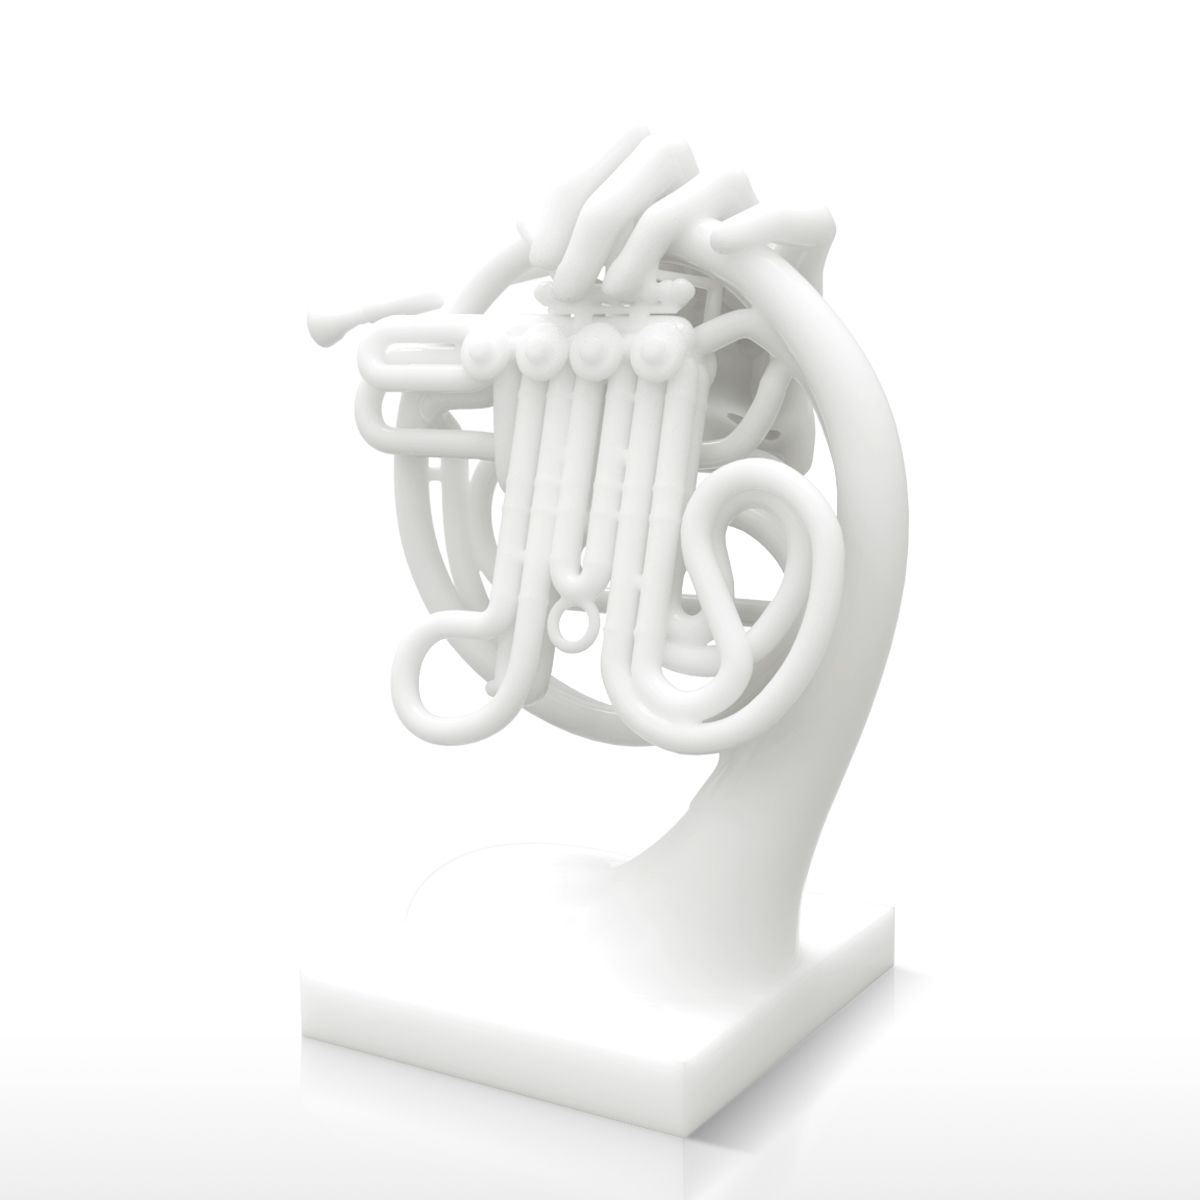 Us 169 74 30 Off 3d Printed Horn Fantasia Sculpture Abstract Sculpture Art Home Decoration Accessories Instrument Instrumentos Musicais In Statues